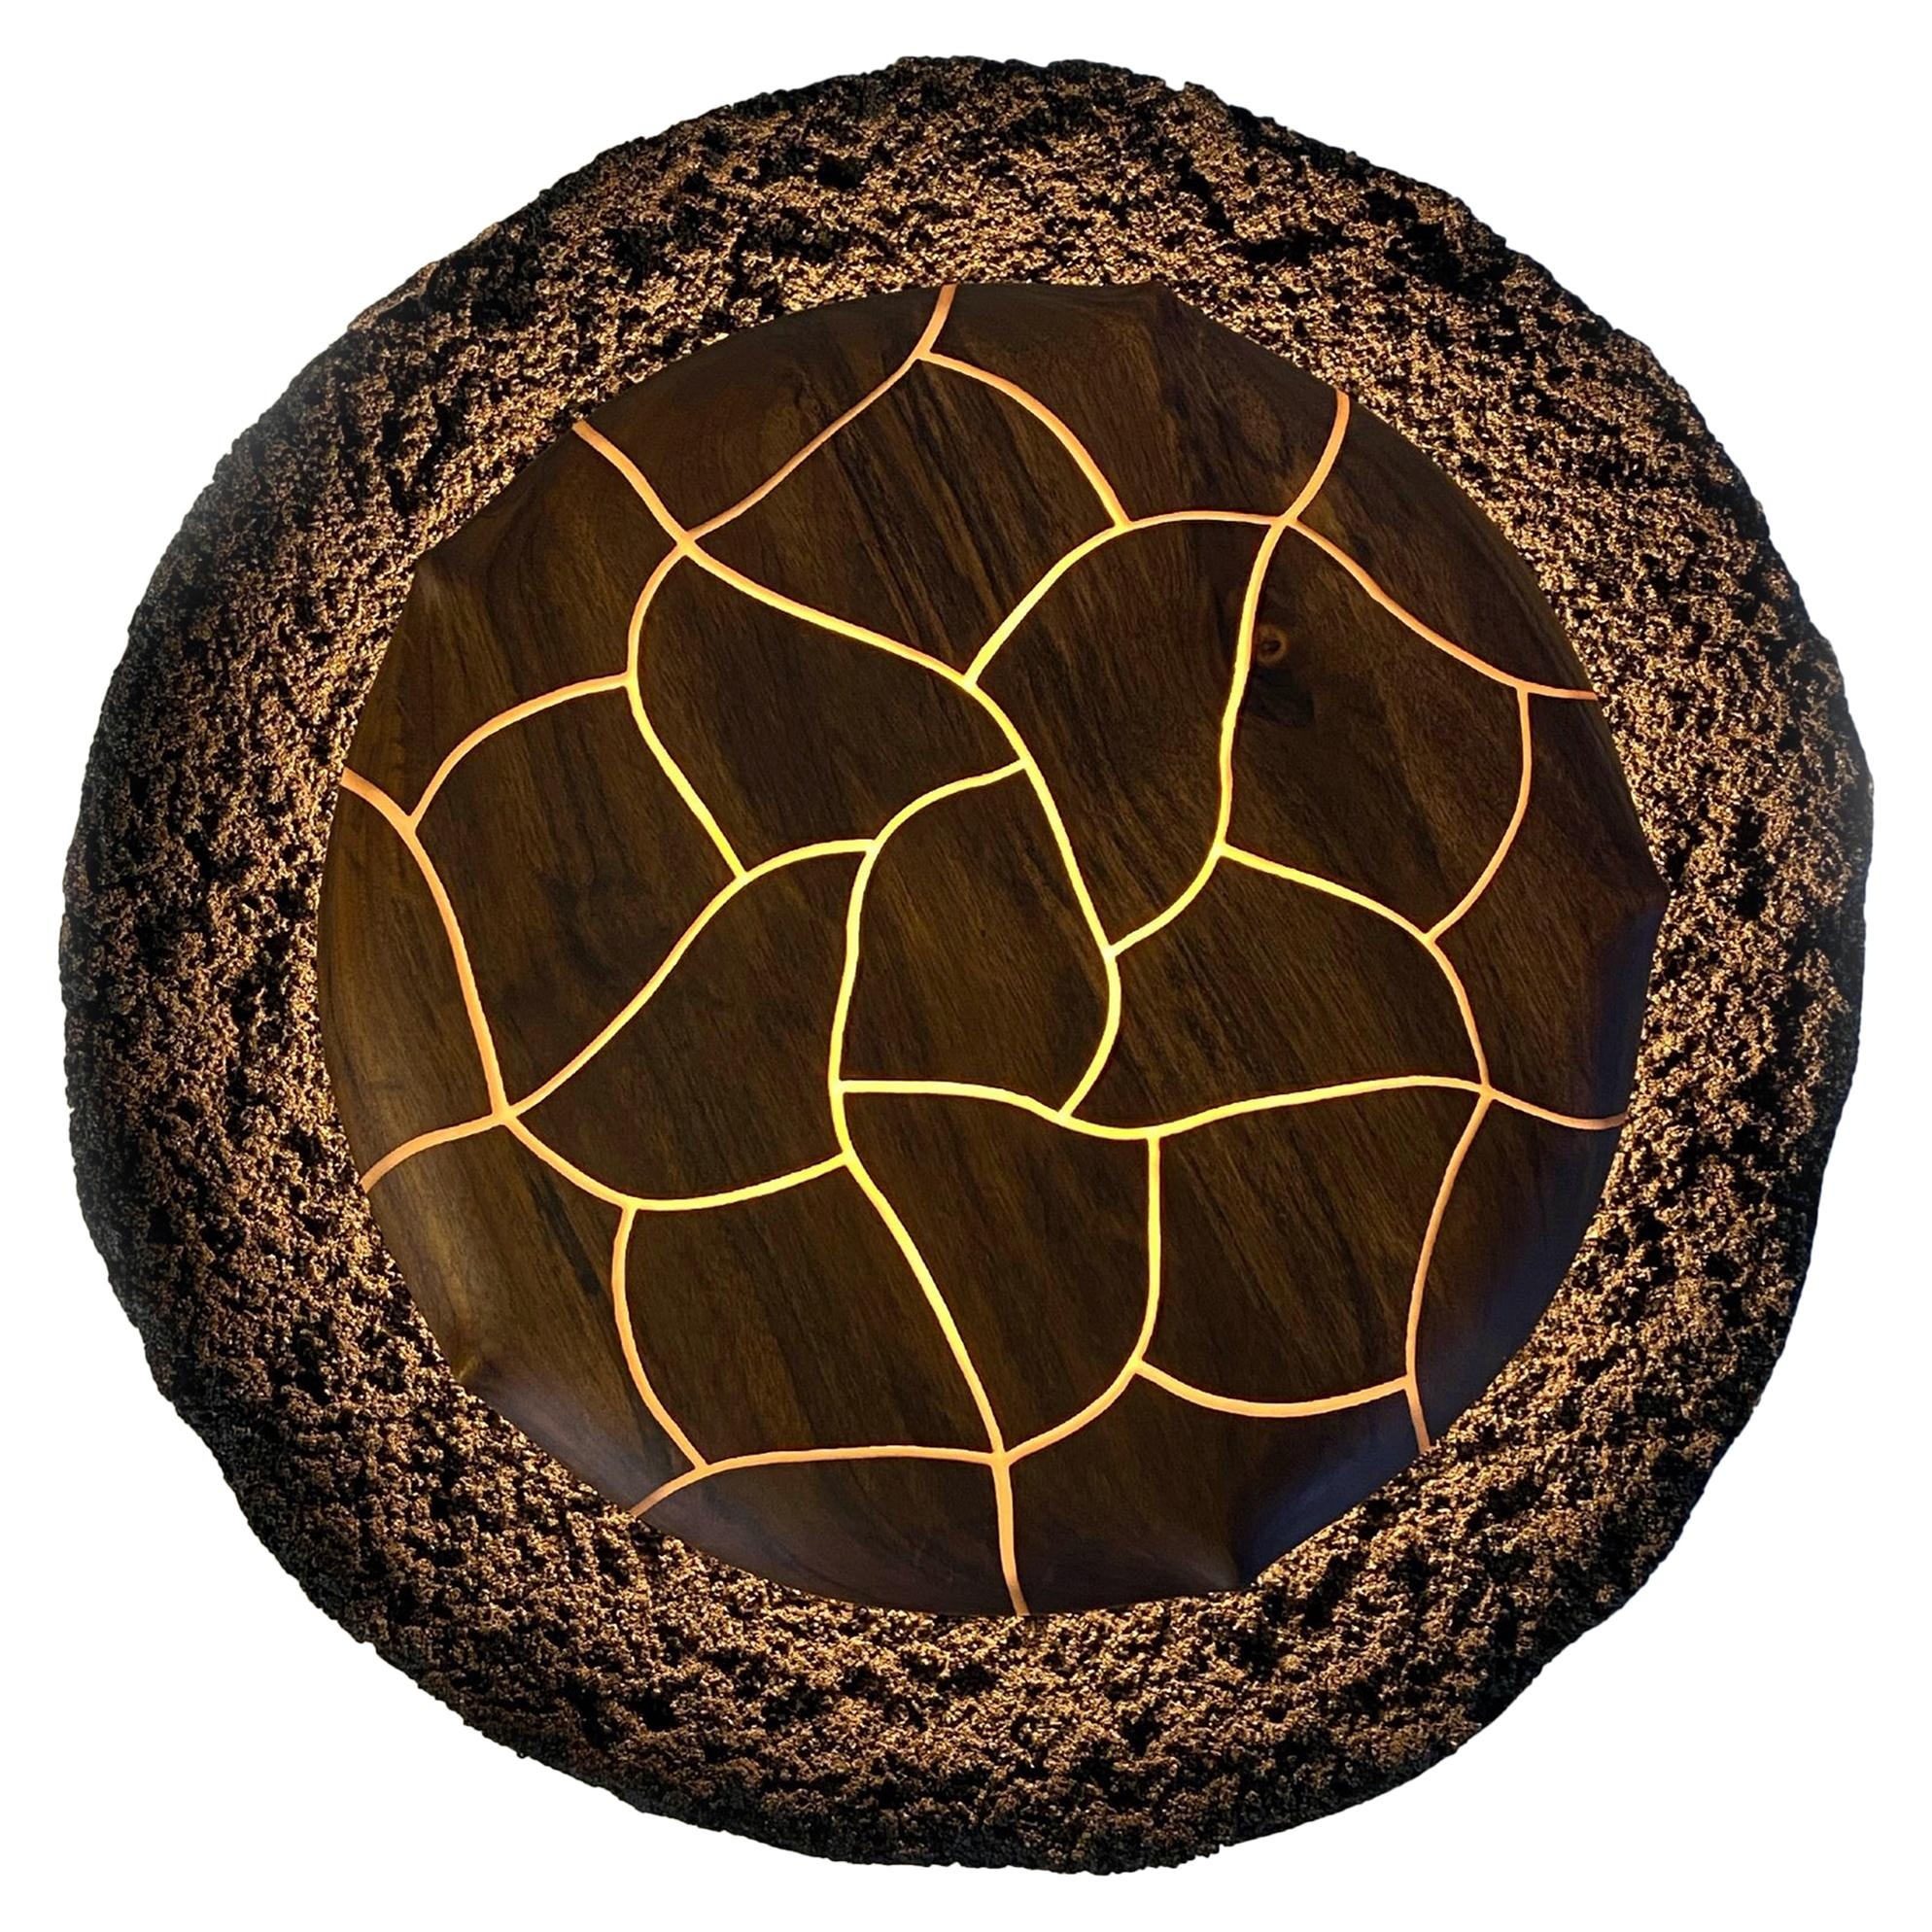 Grão Contemporary Wall Sculpture Lamp by Marcos Amato, Limited Edition